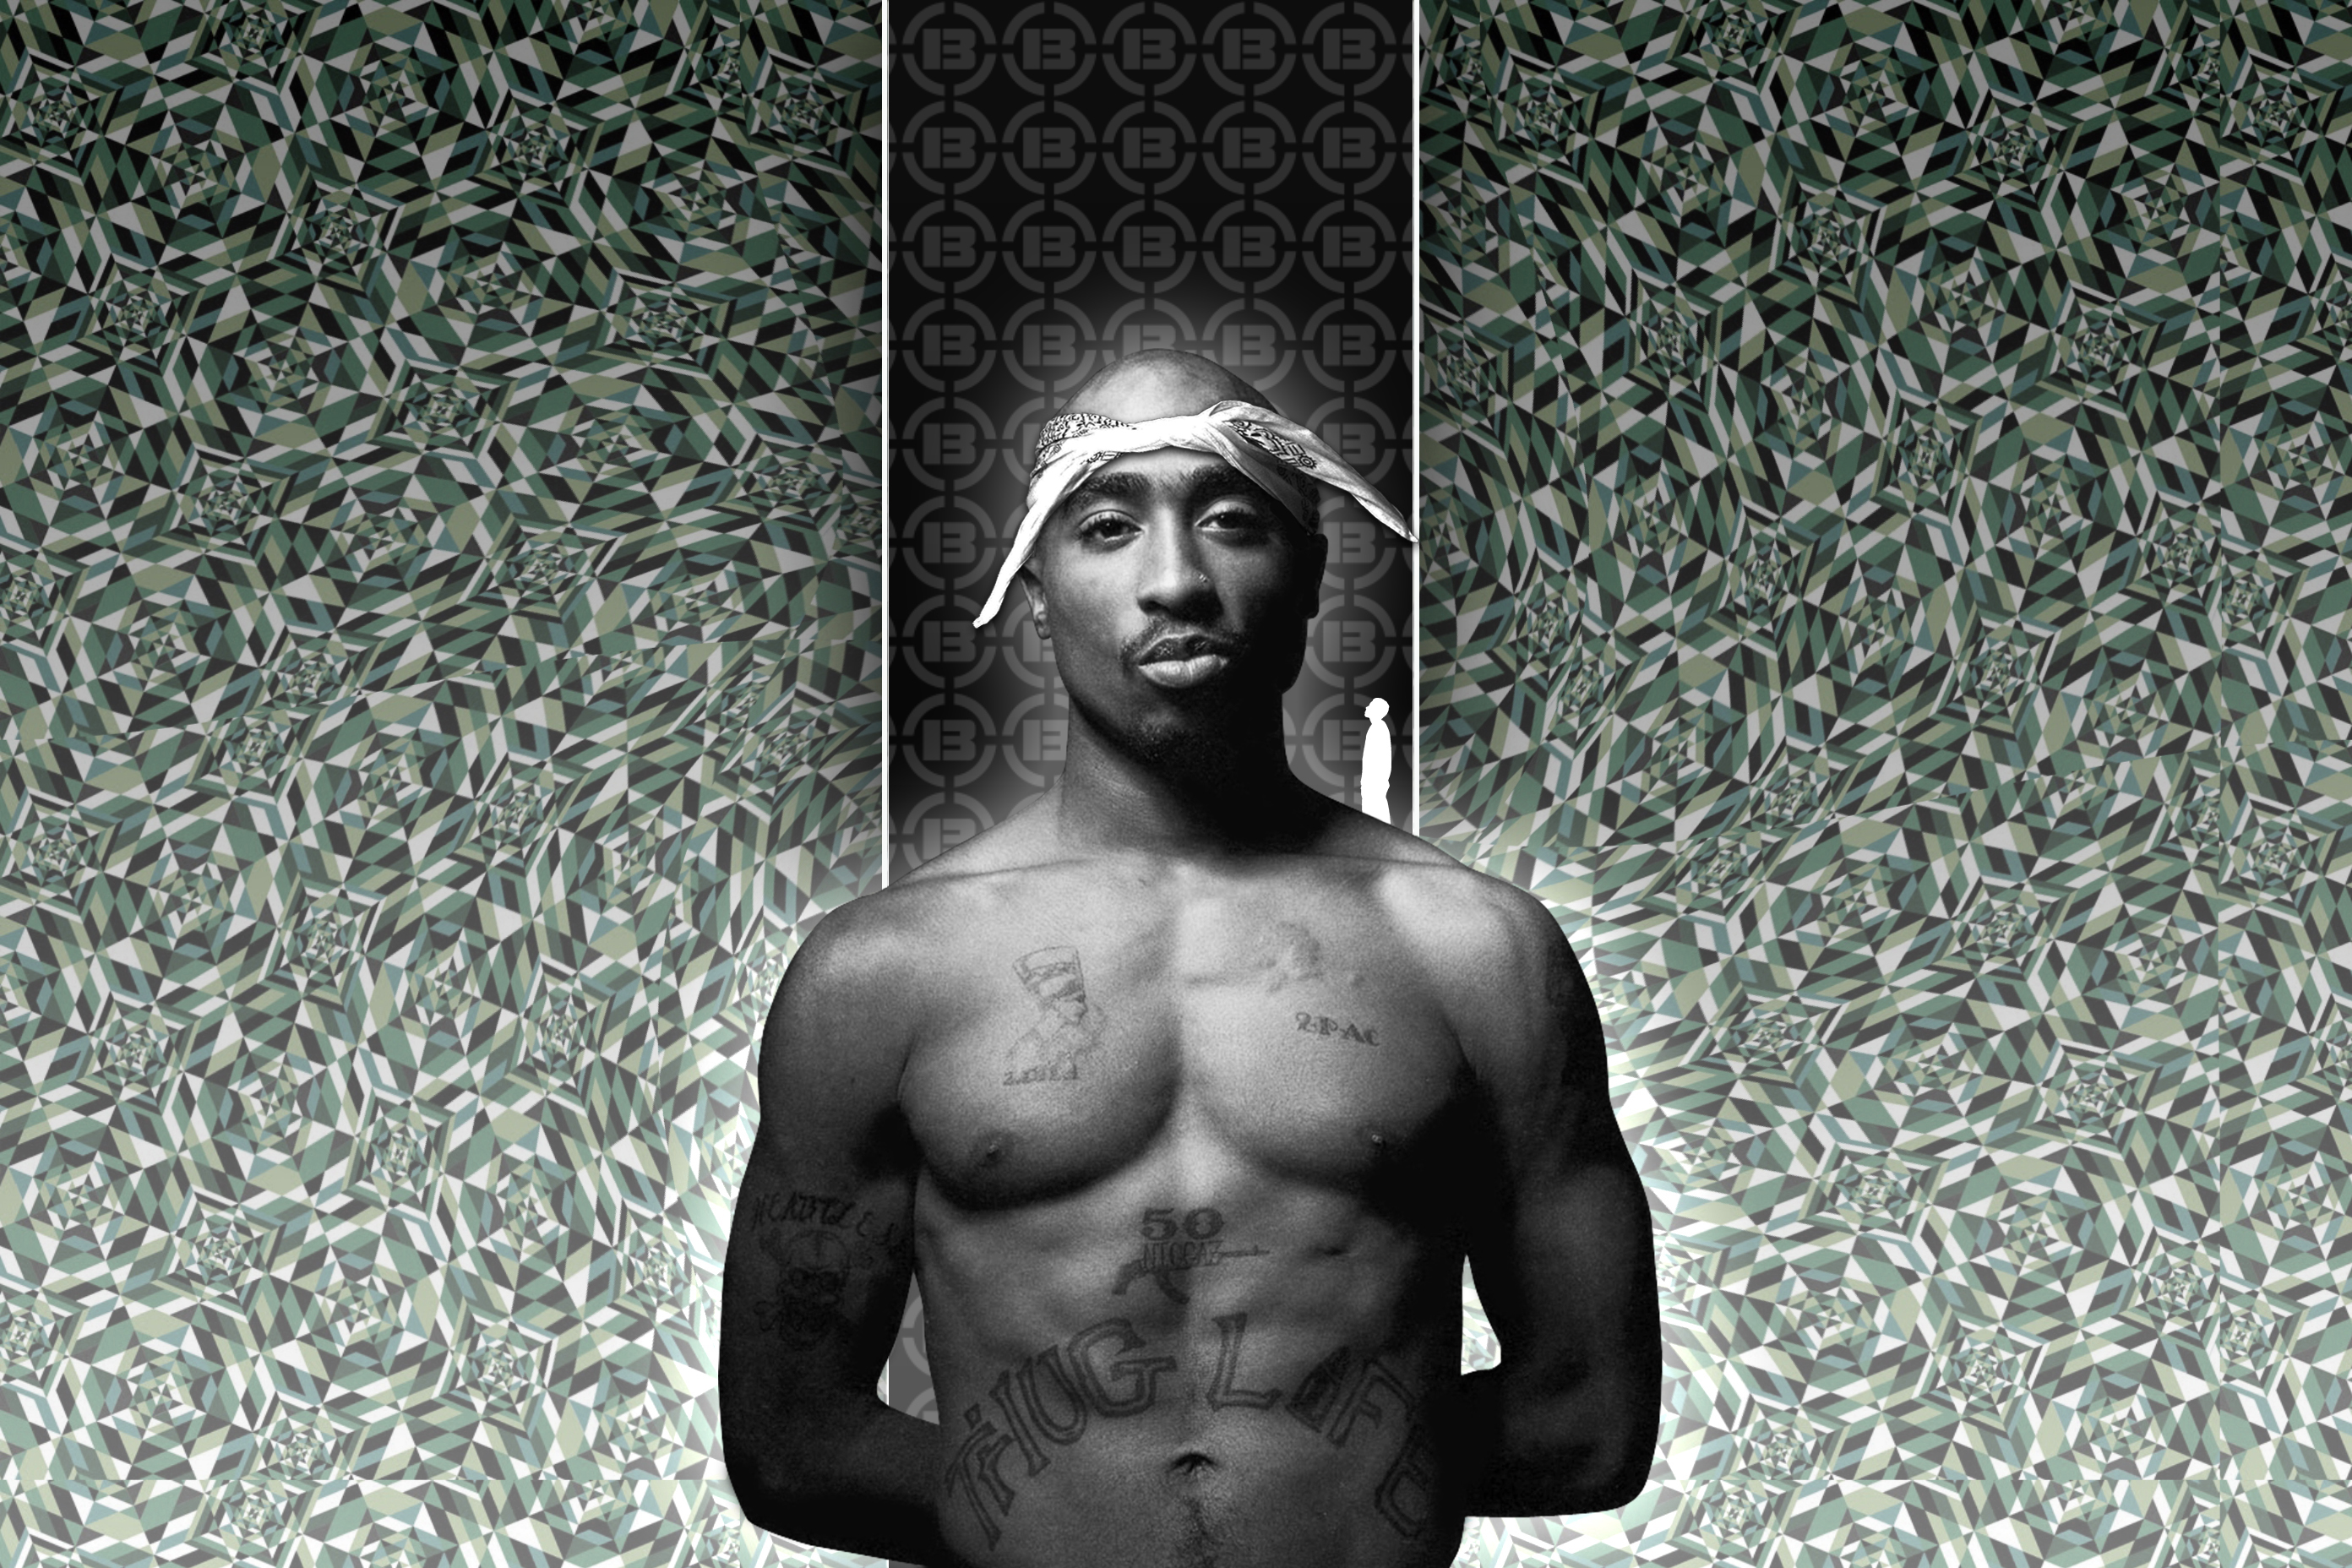 Tupac wallpapers wallpaperup tupac gangsta rapper rap hip hop et wallpaper voltagebd Choice Image